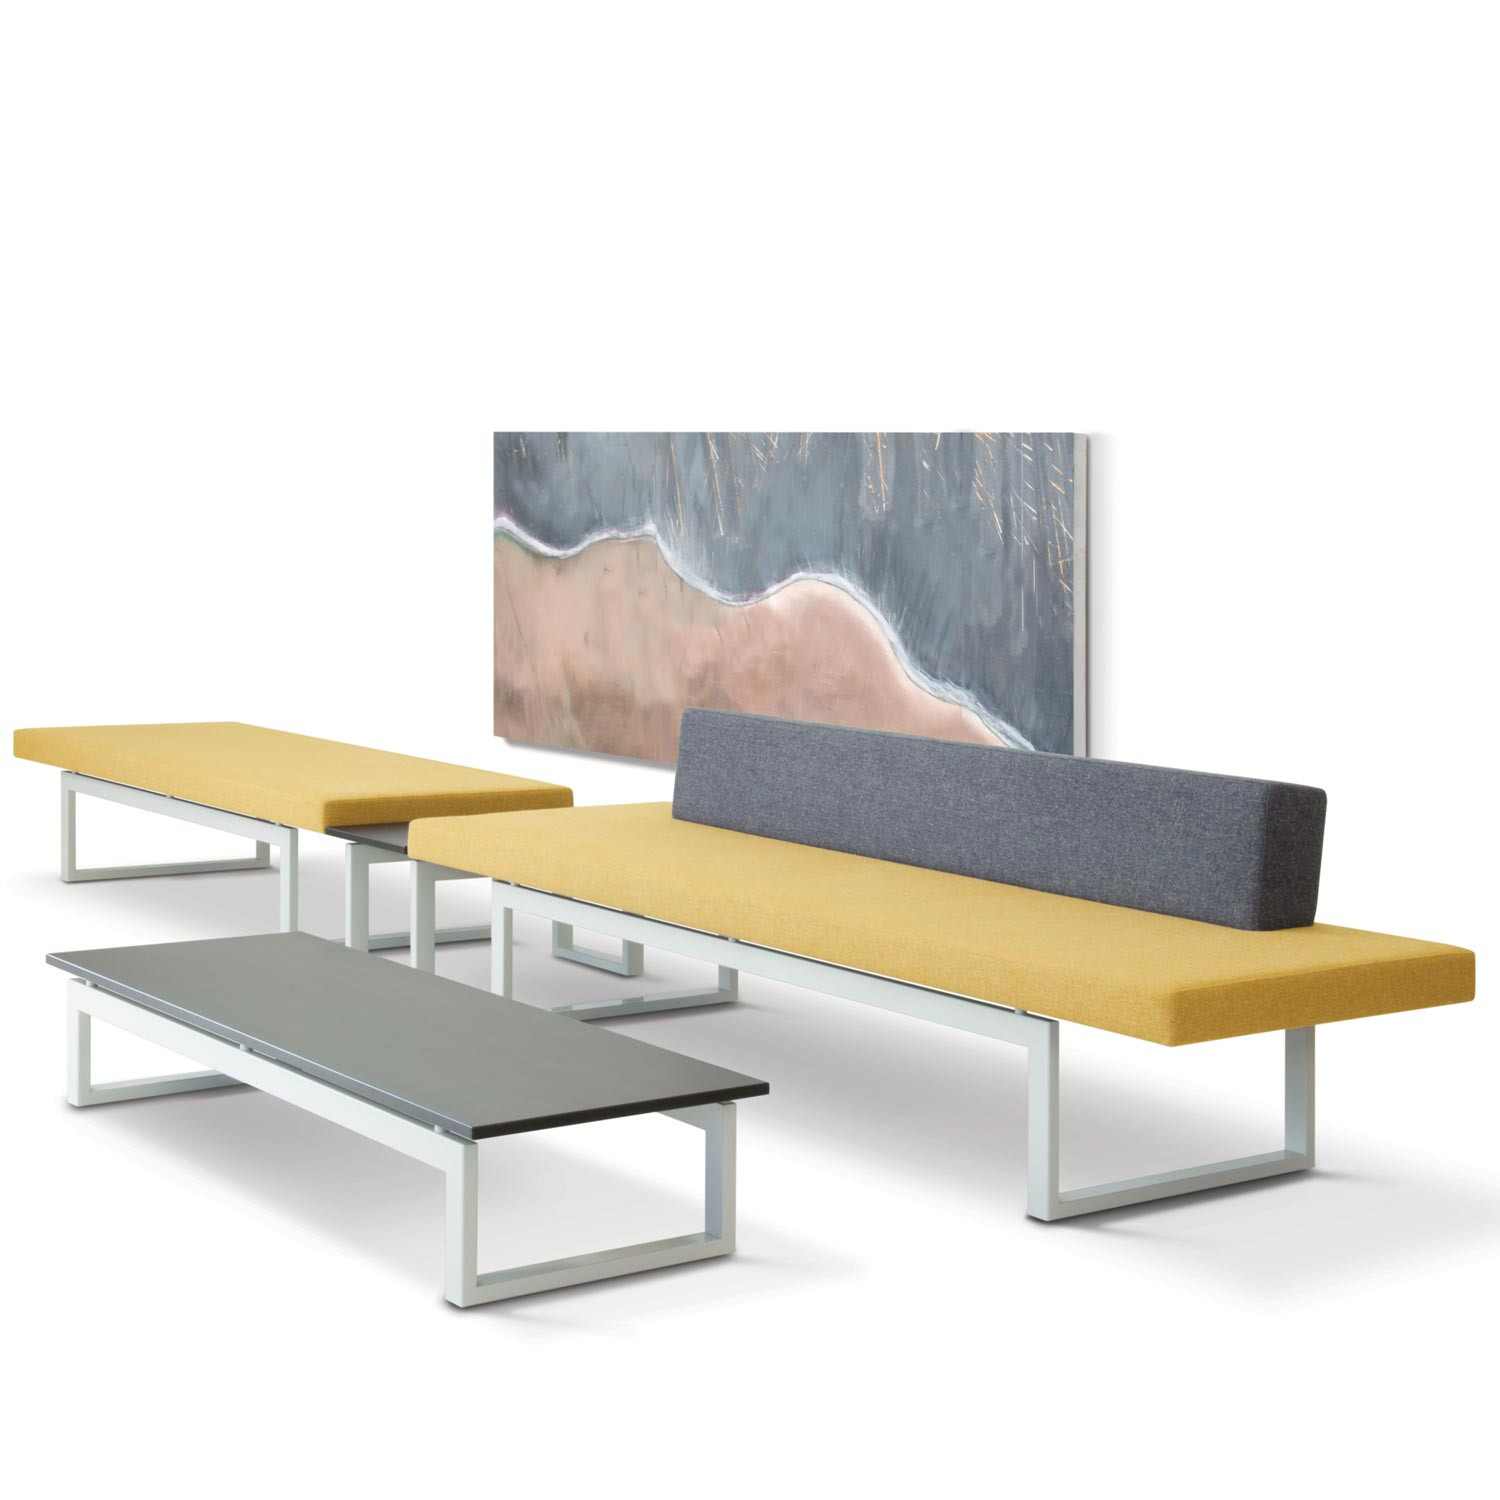 HM106 Bench and Sofa